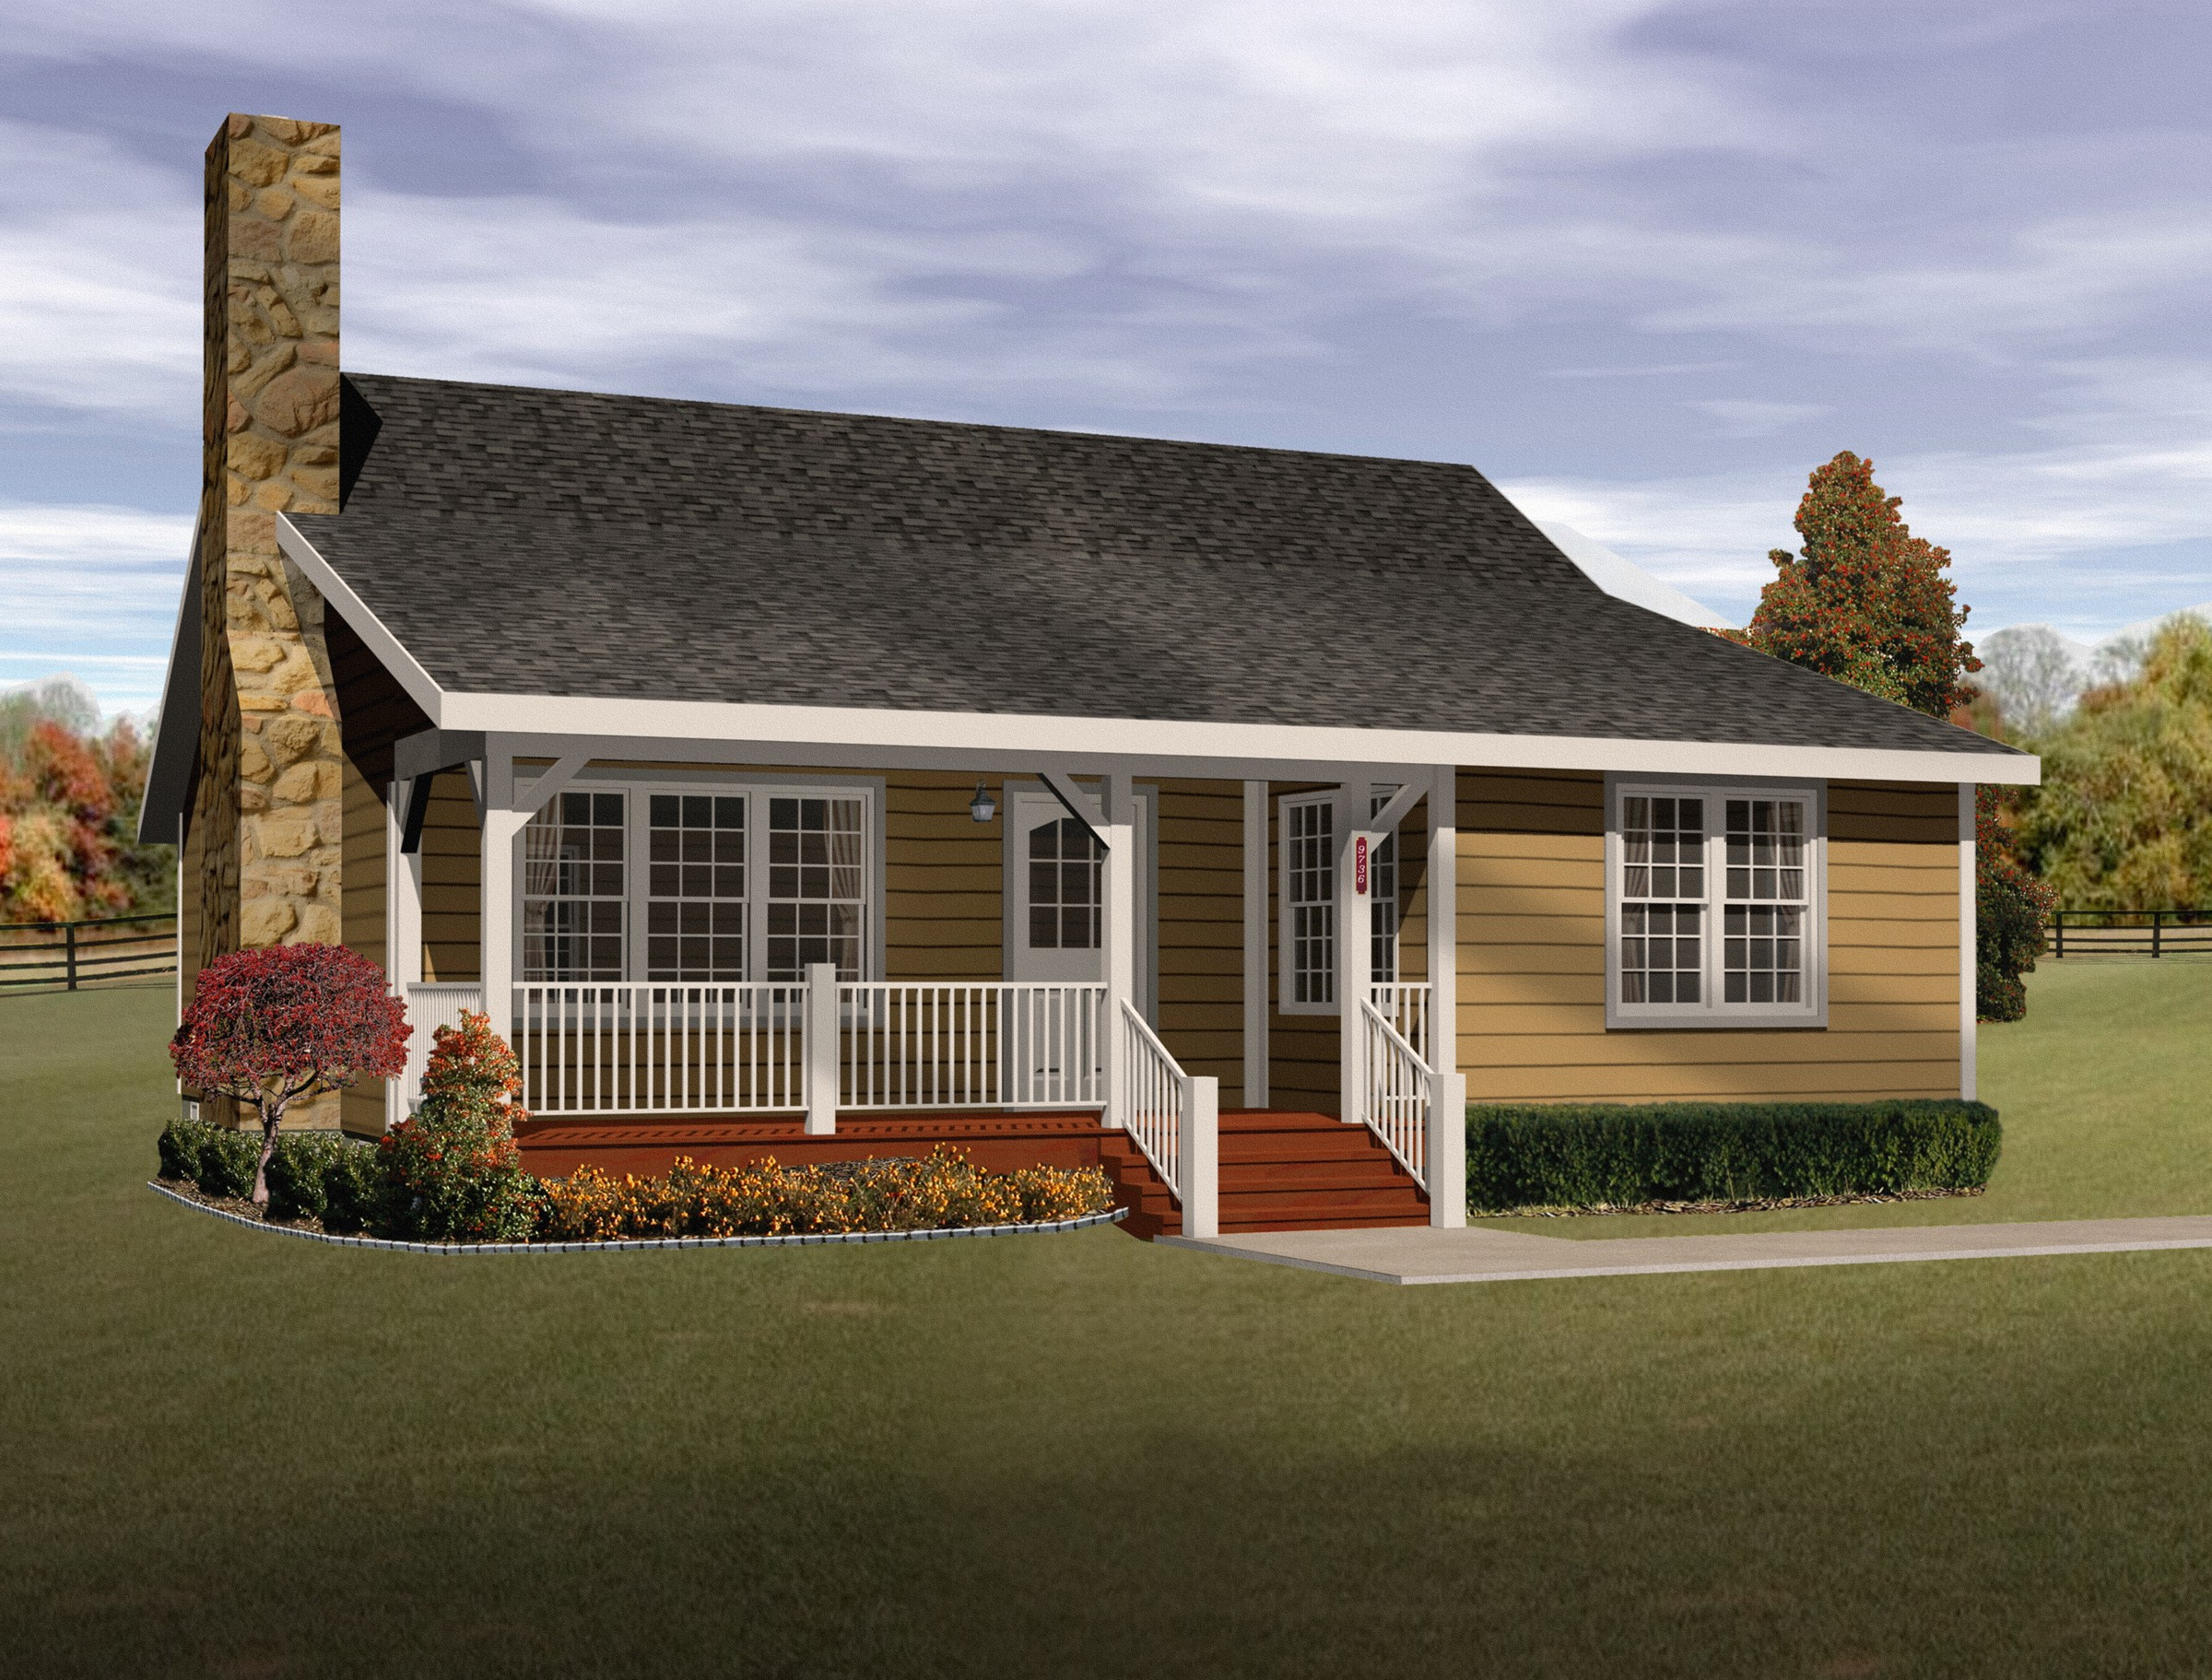 cozy cottage home plan 2256sl 1st floor master suite